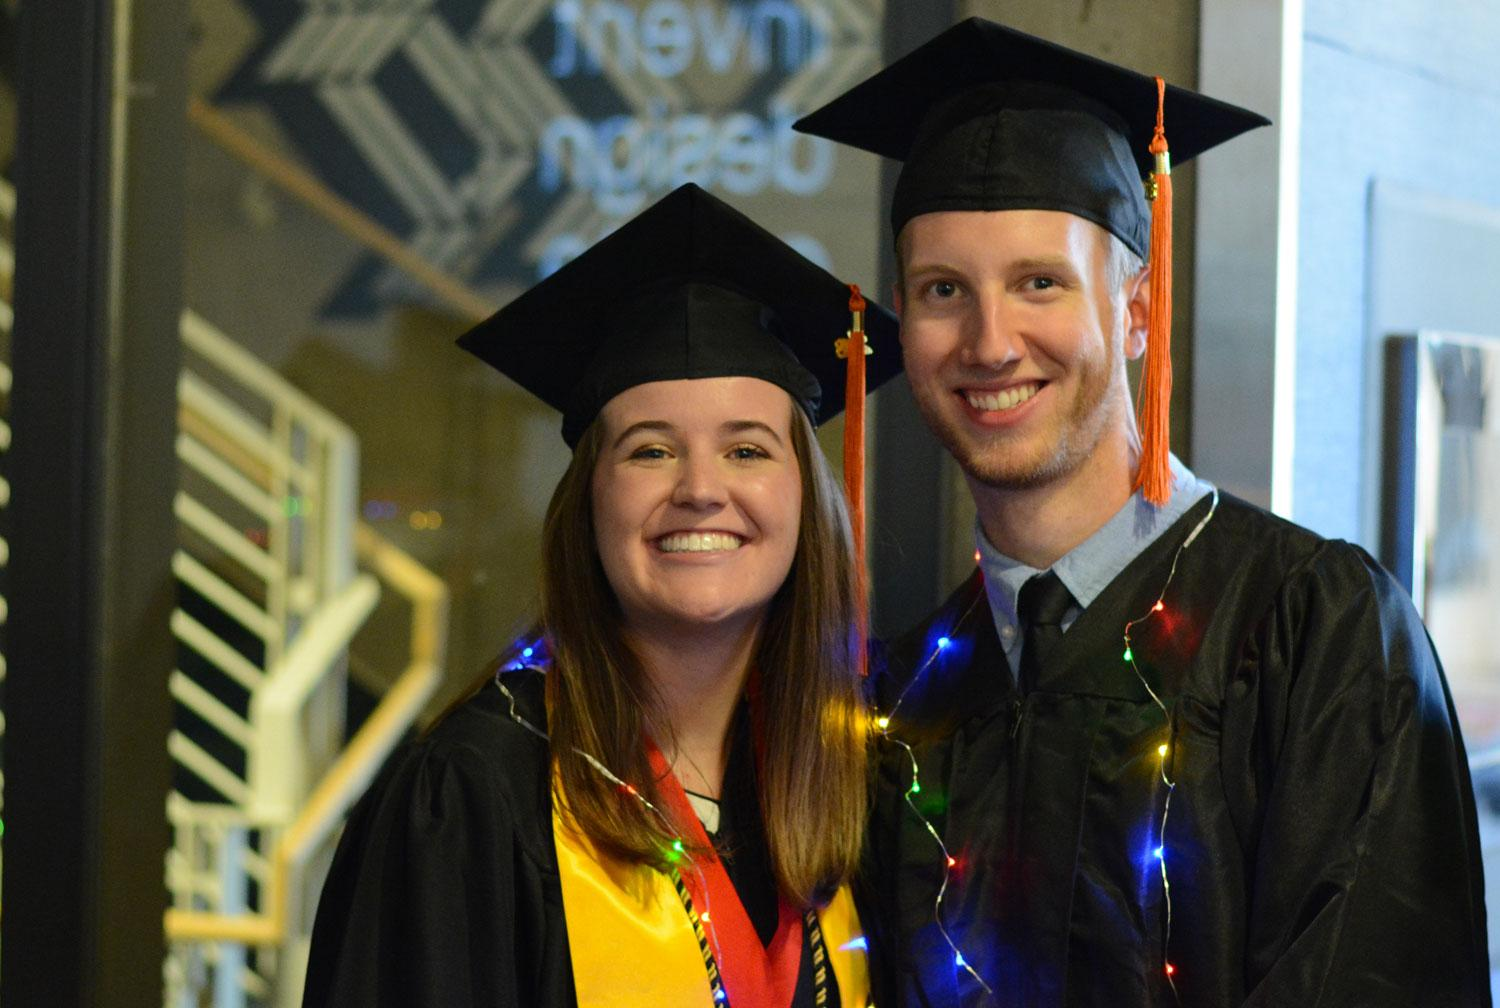 Two students pose before graduation ceremonies.